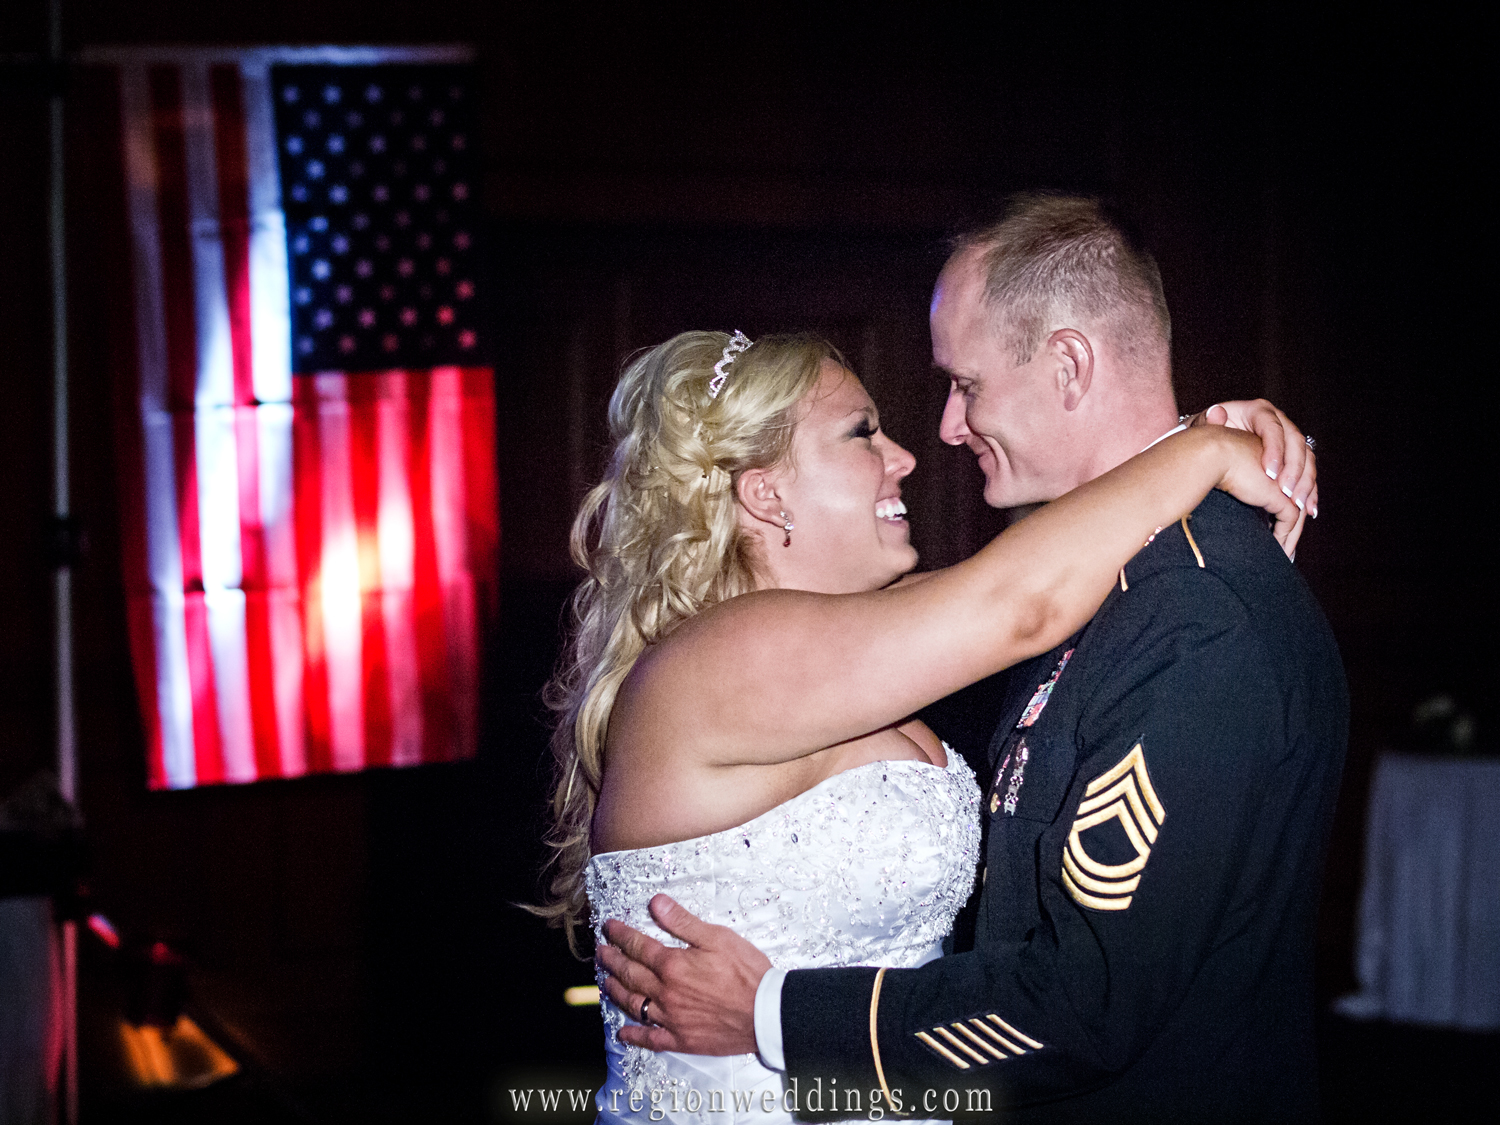 A military bride and groom dance in front of the American flag at Wicker Park Social Center.